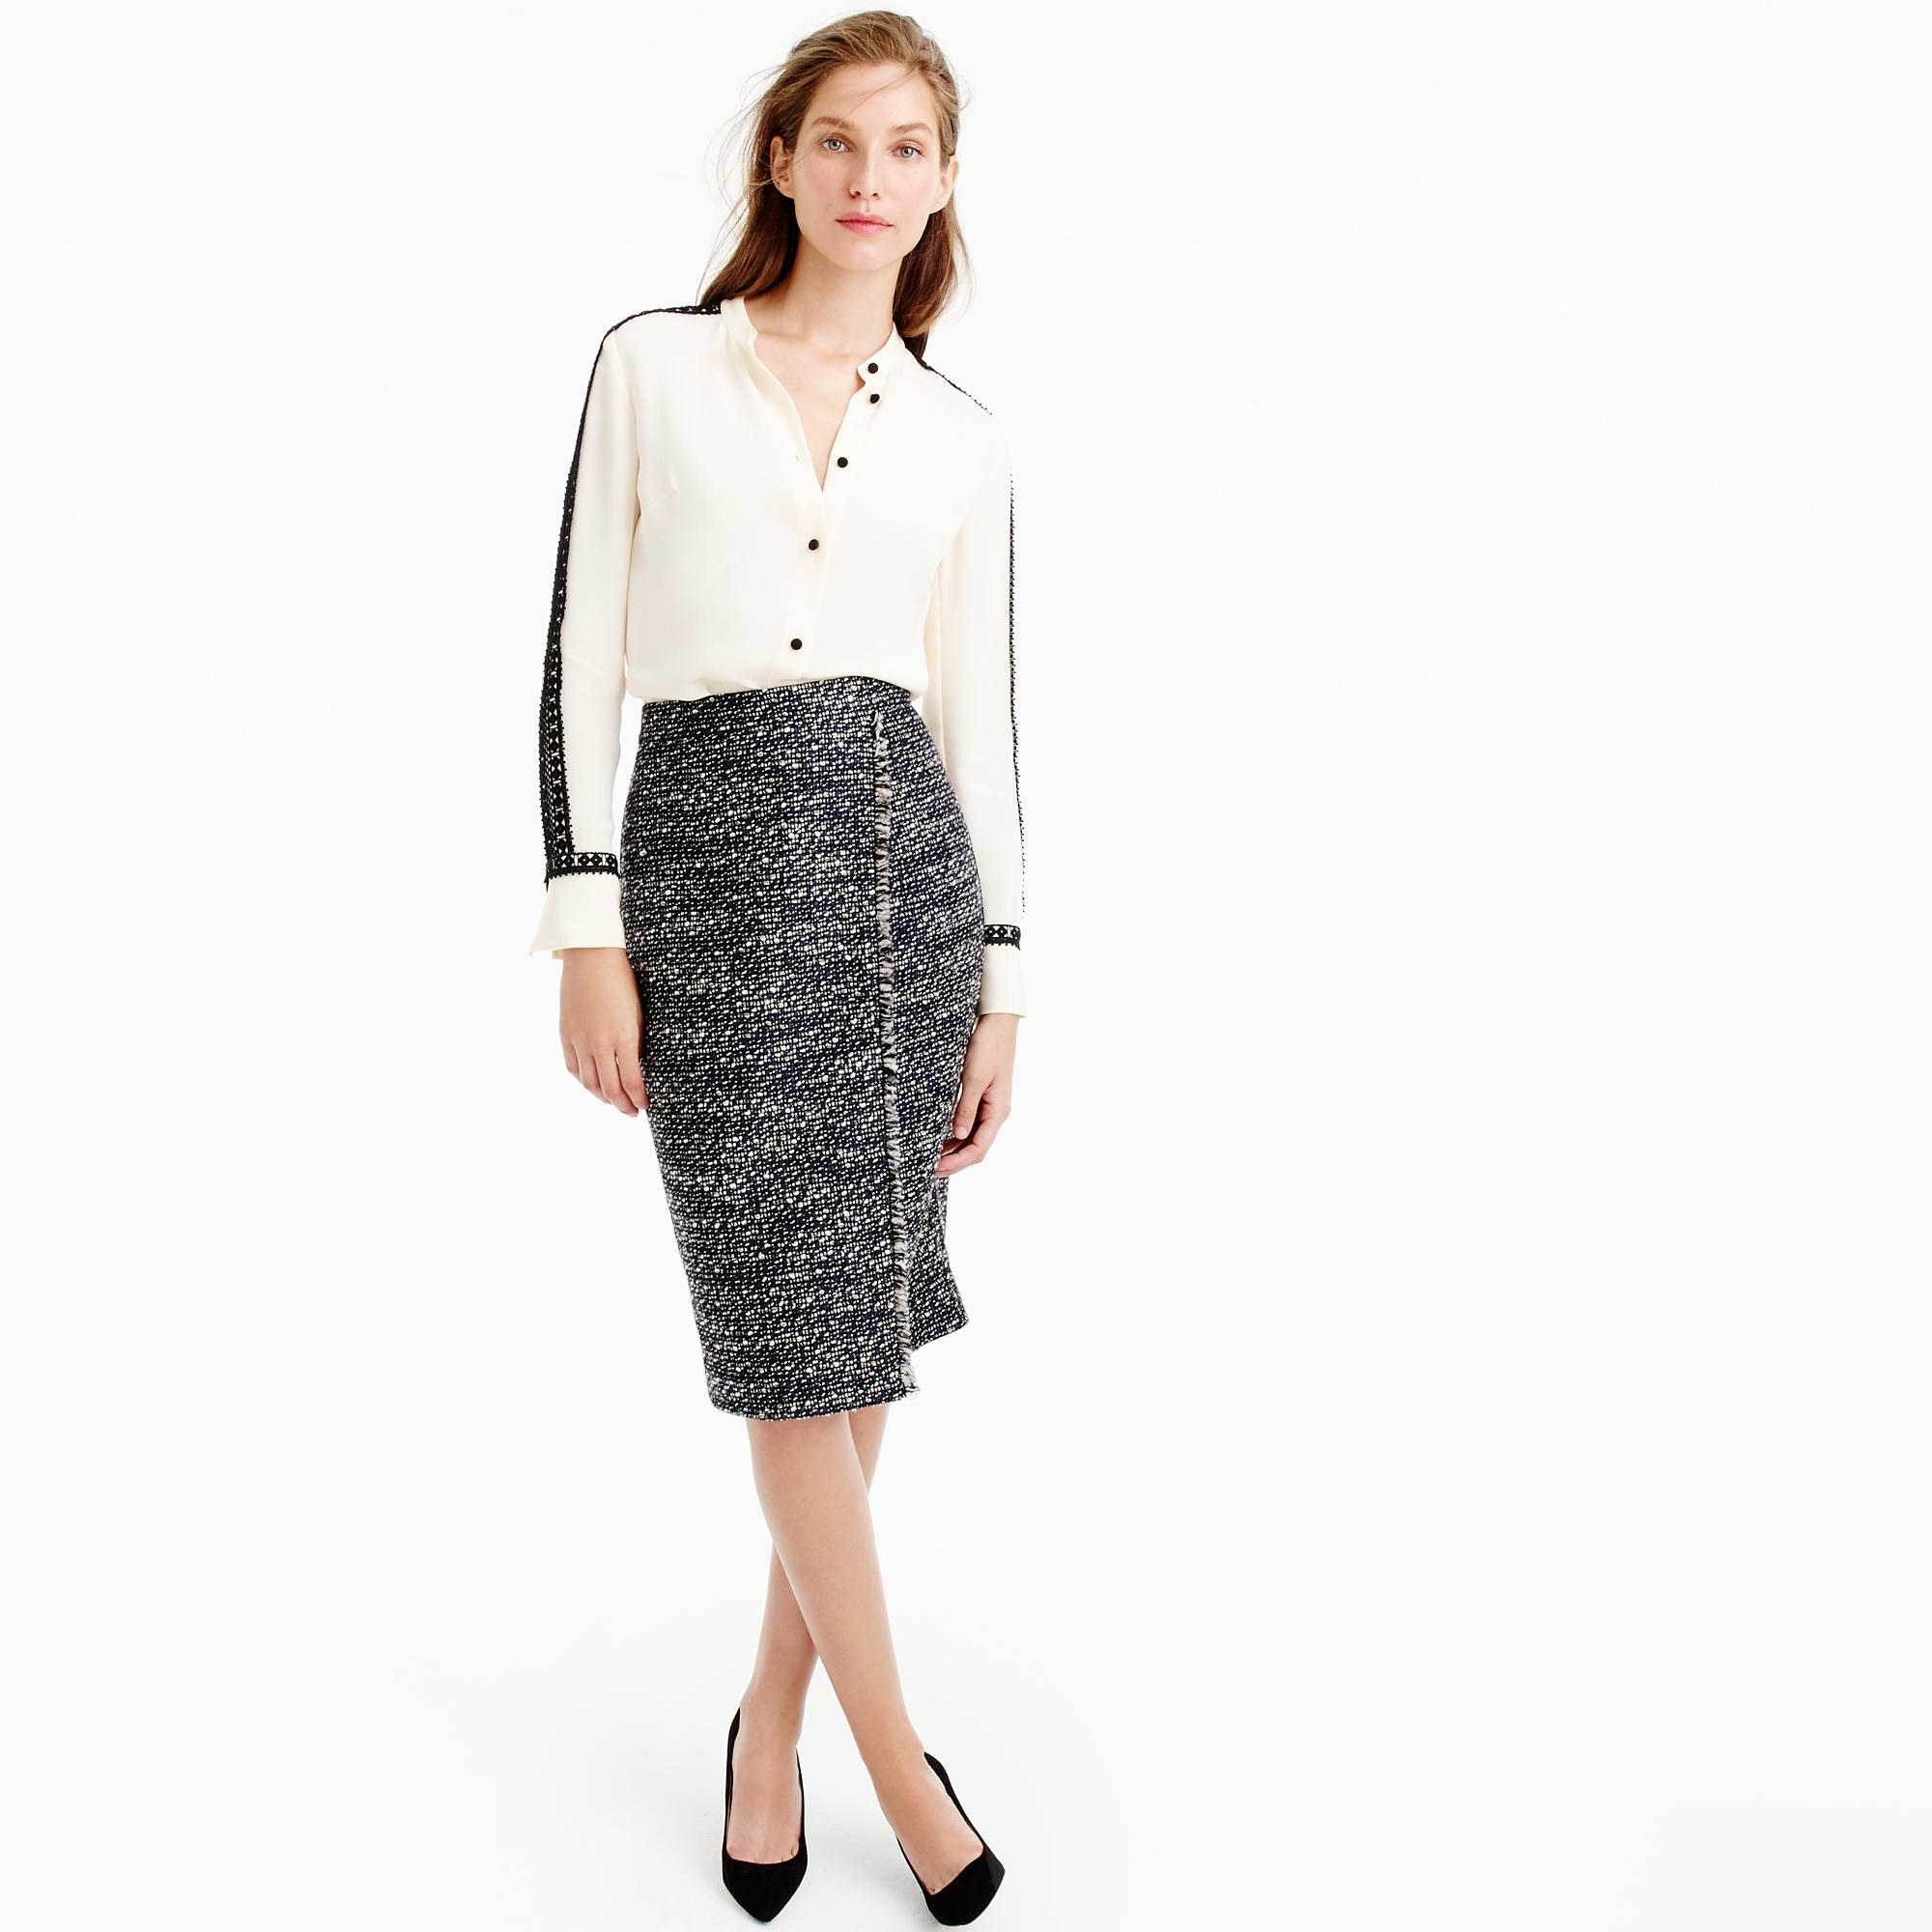 6a04c9b703 10 Fresh Ways to Wear a Pencil Skirt